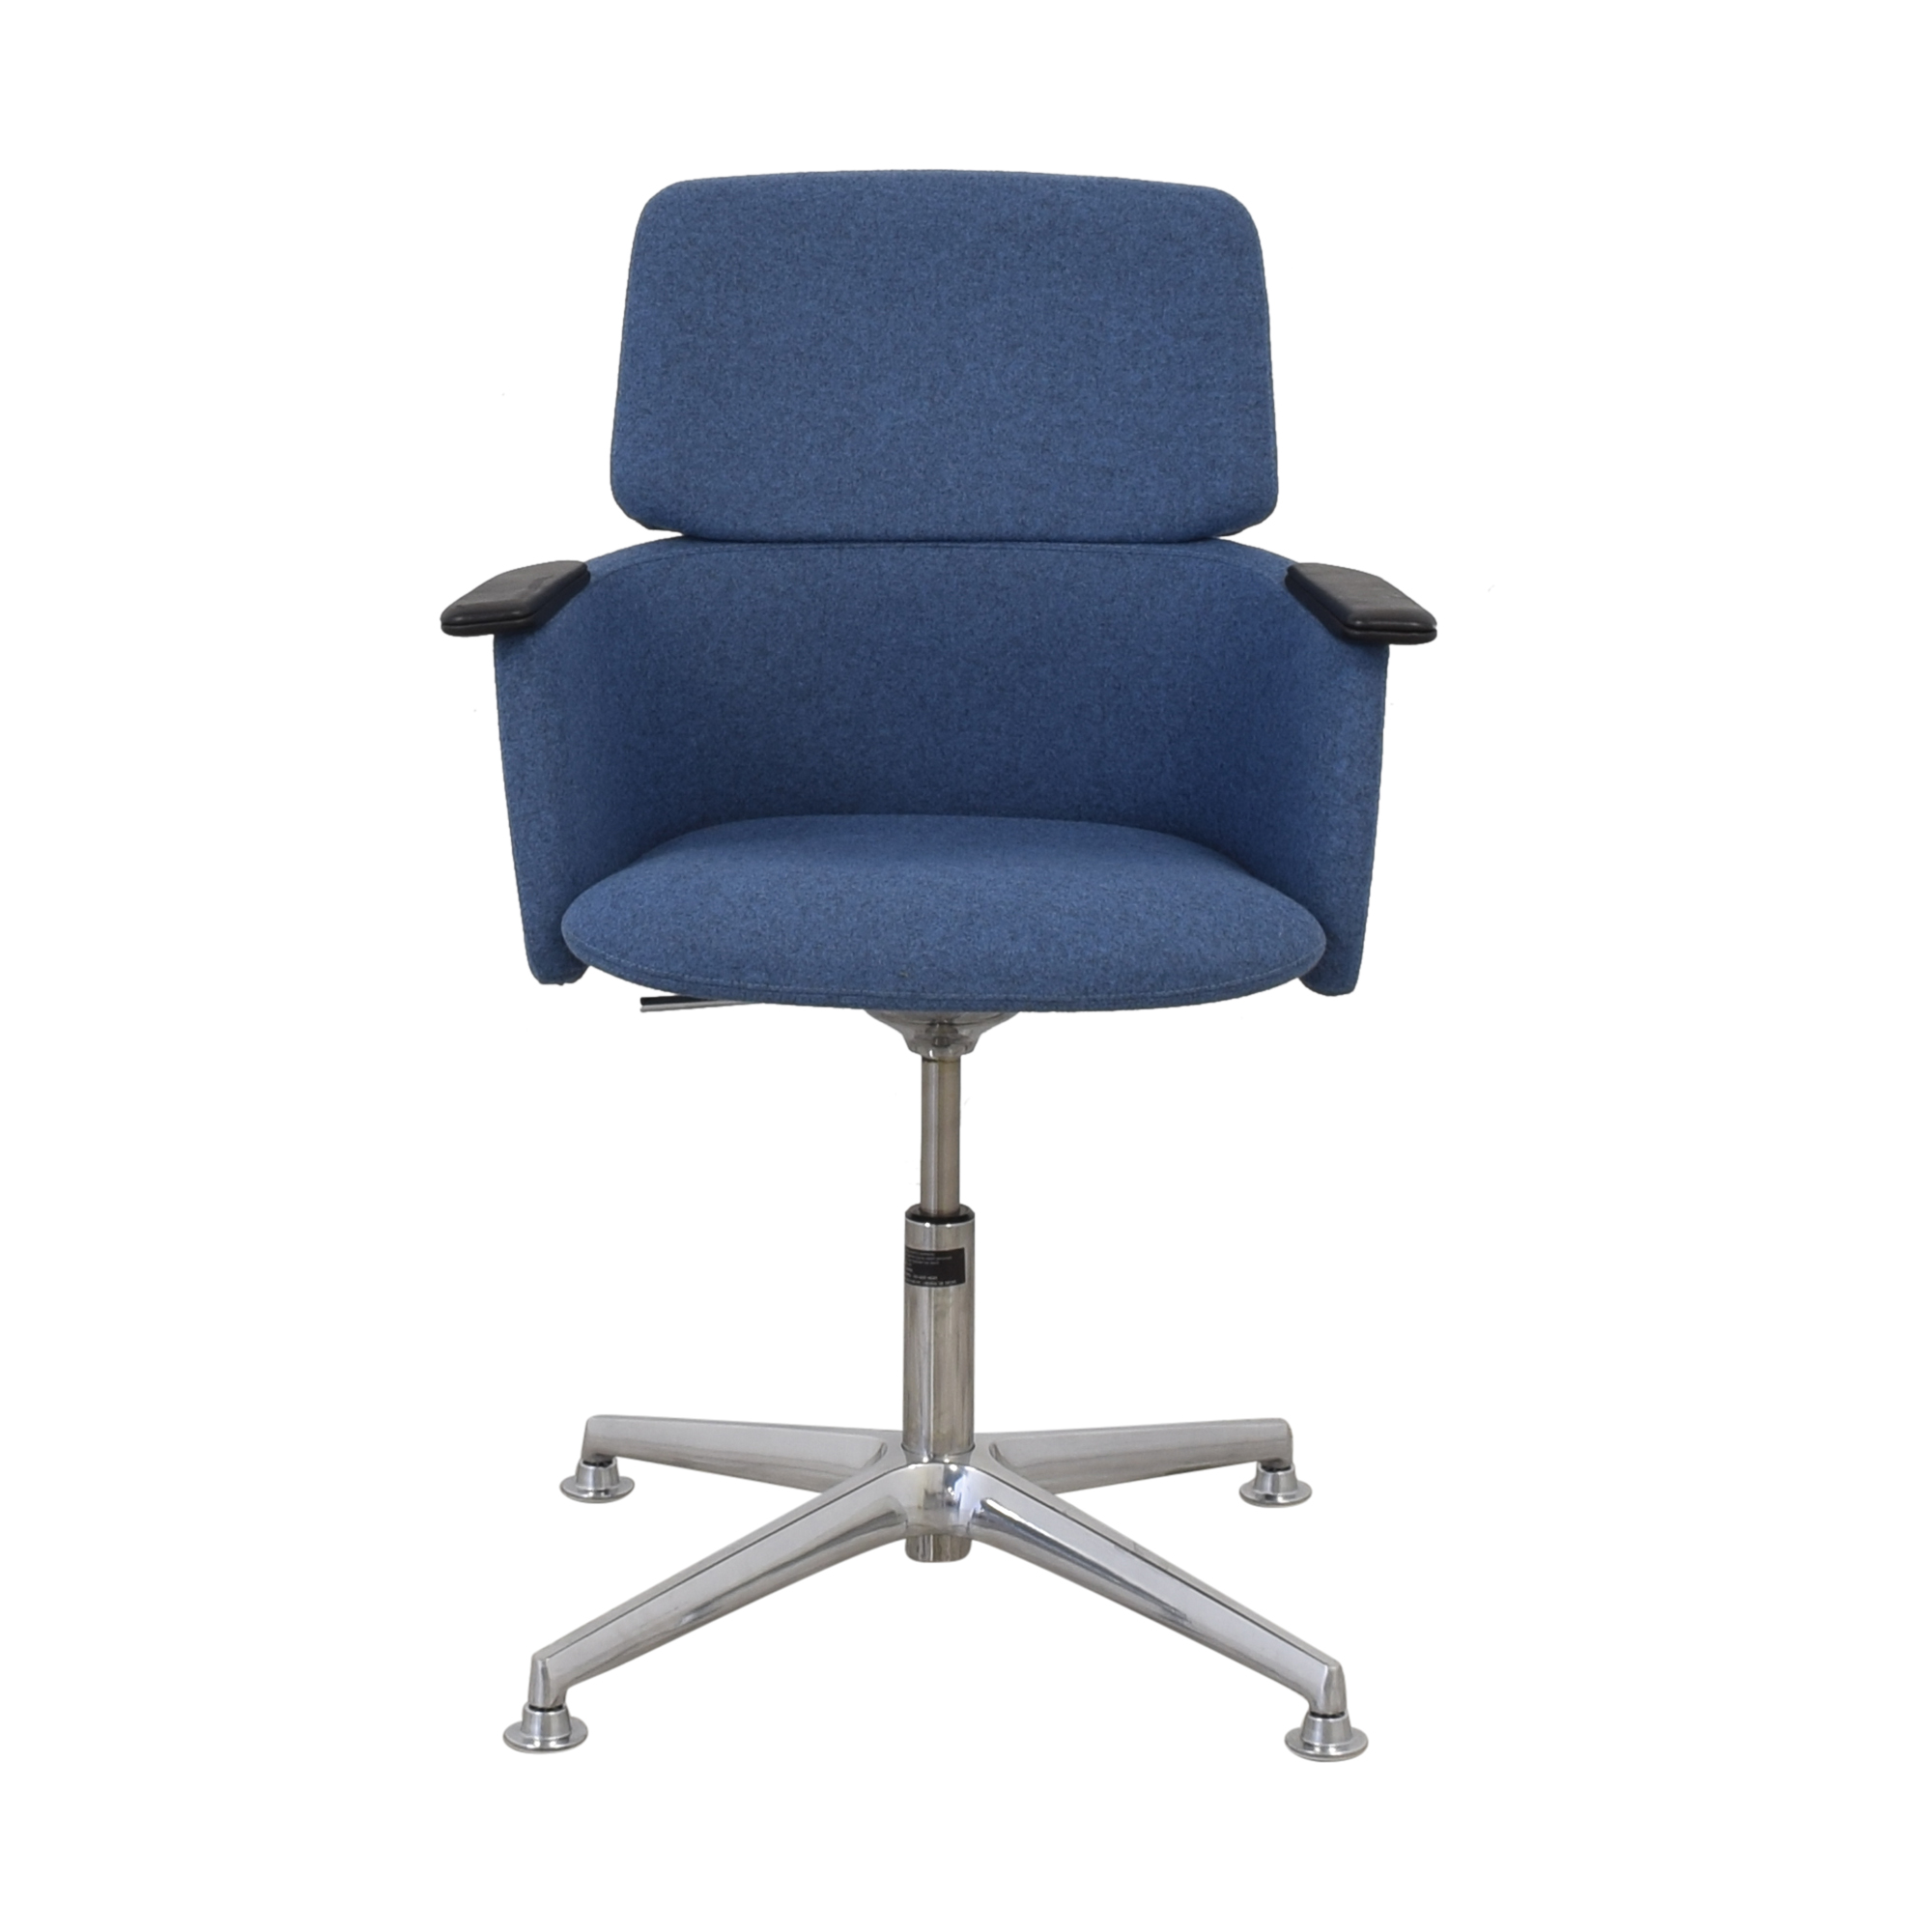 Koleksiyon Tola Visitor Chair / Home Office Chairs